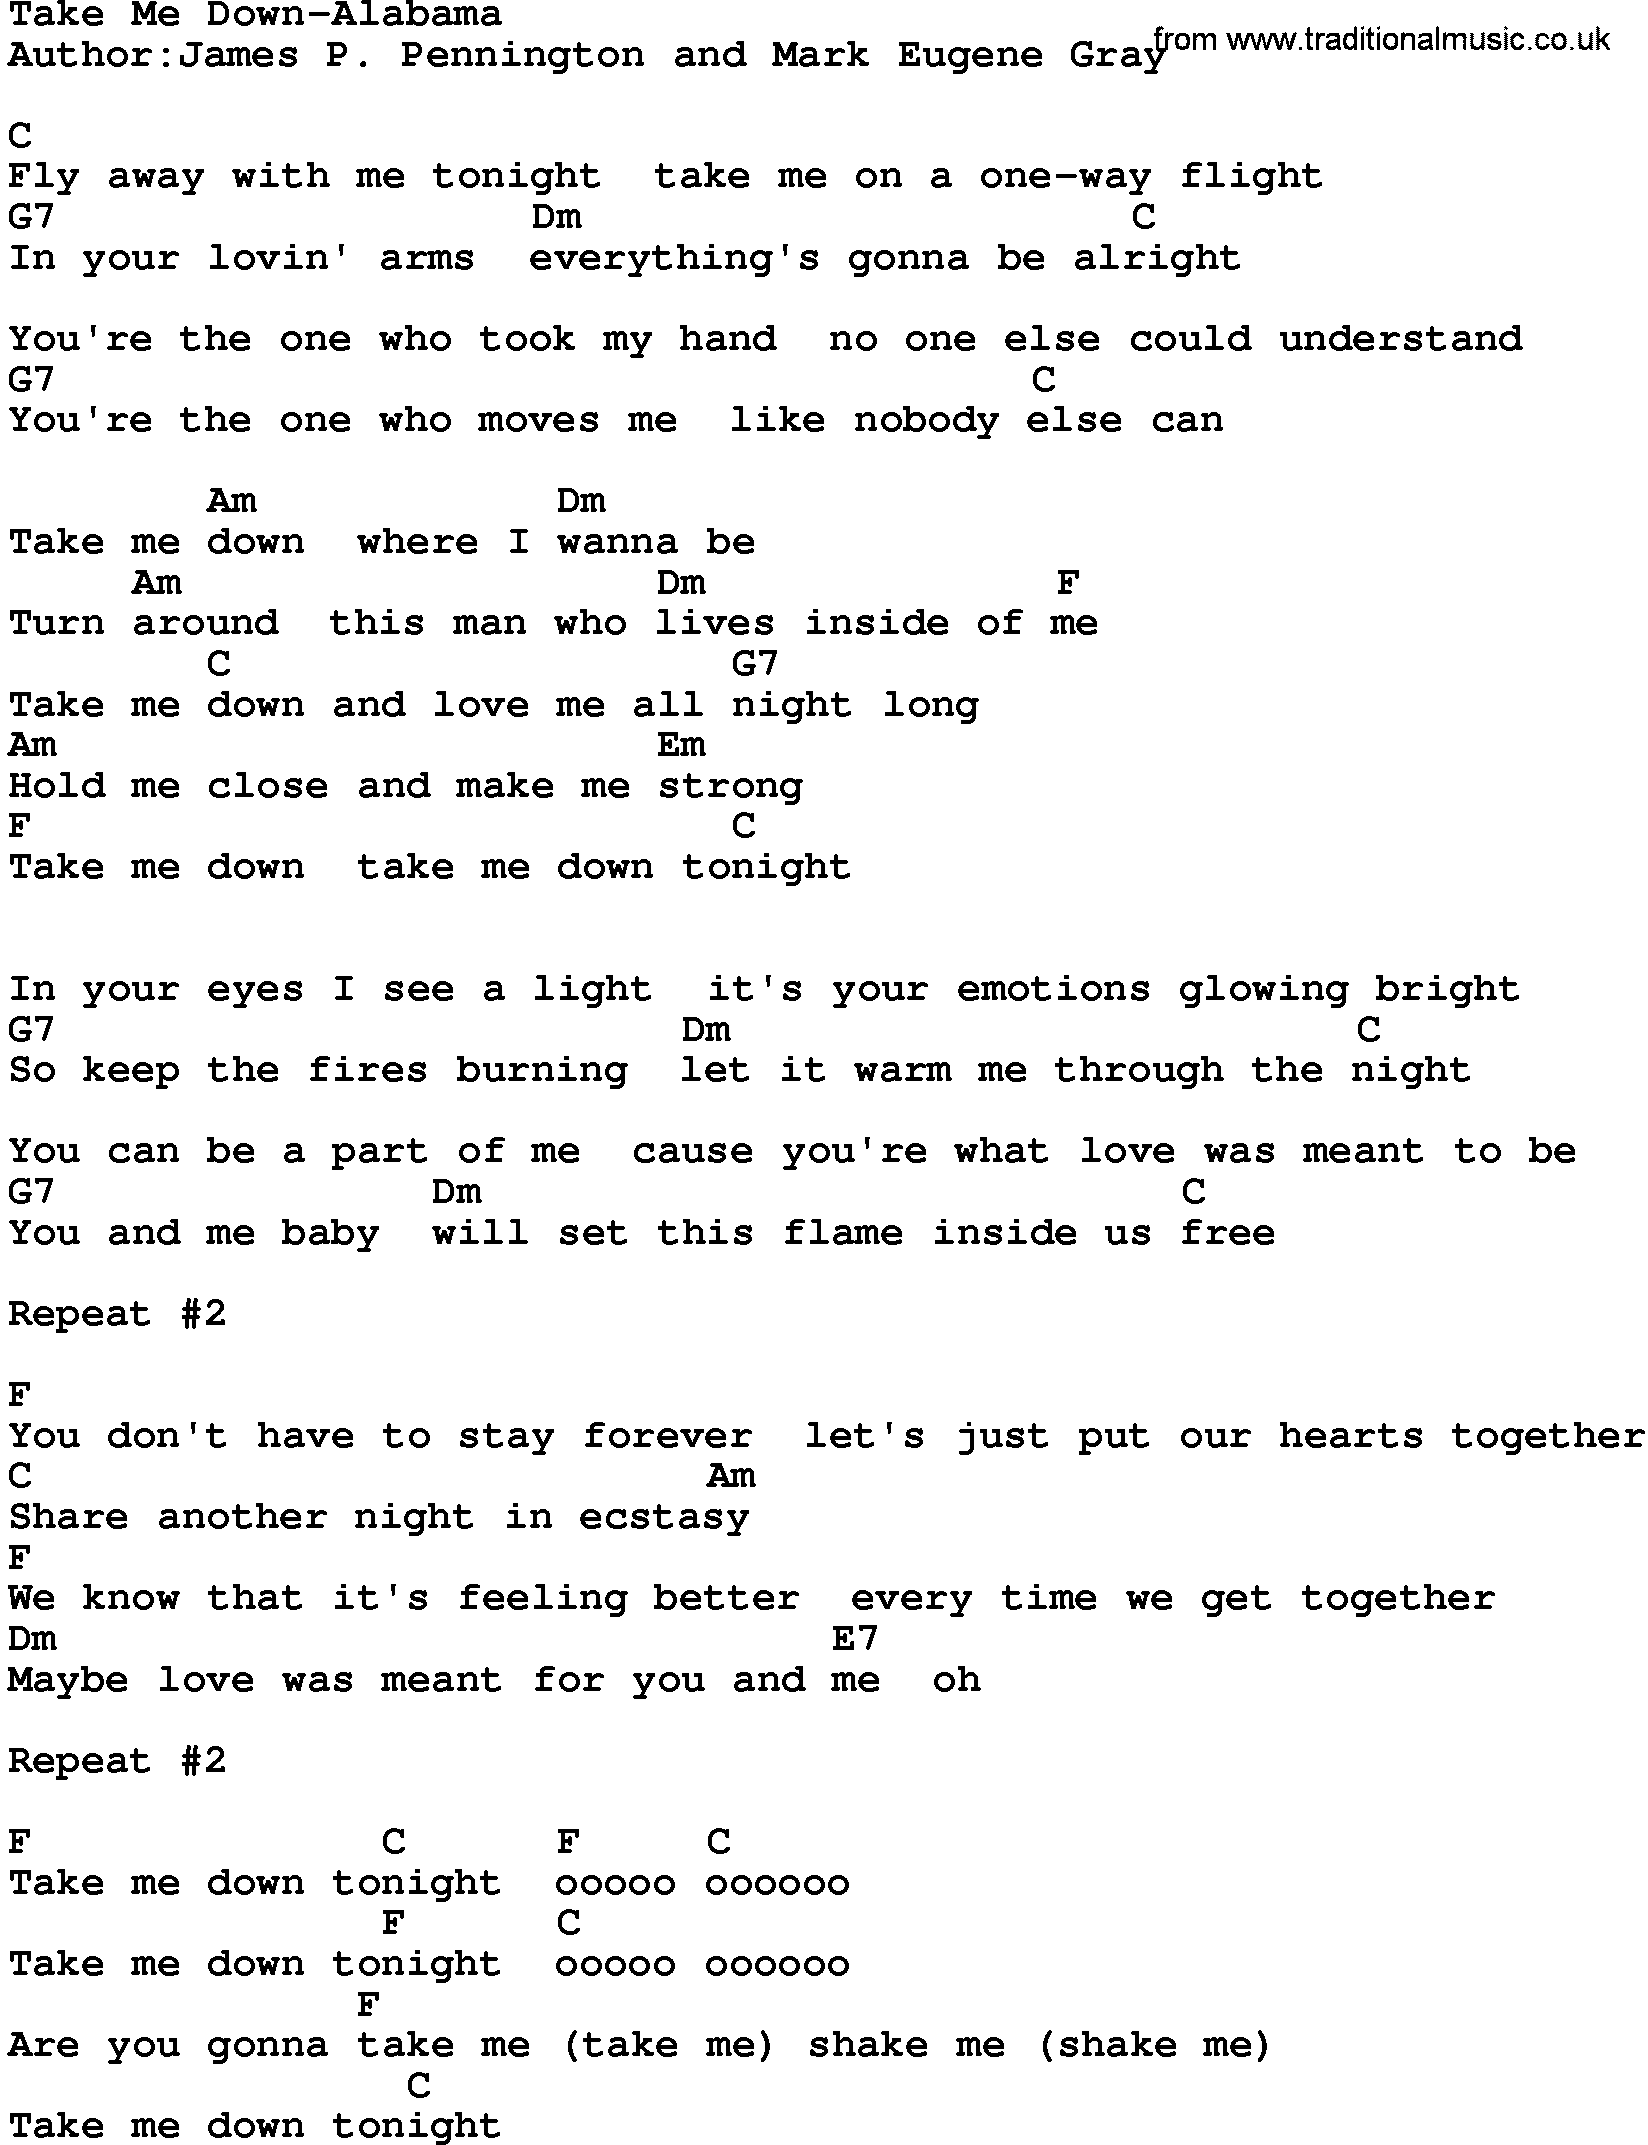 Take It Down Lyrics